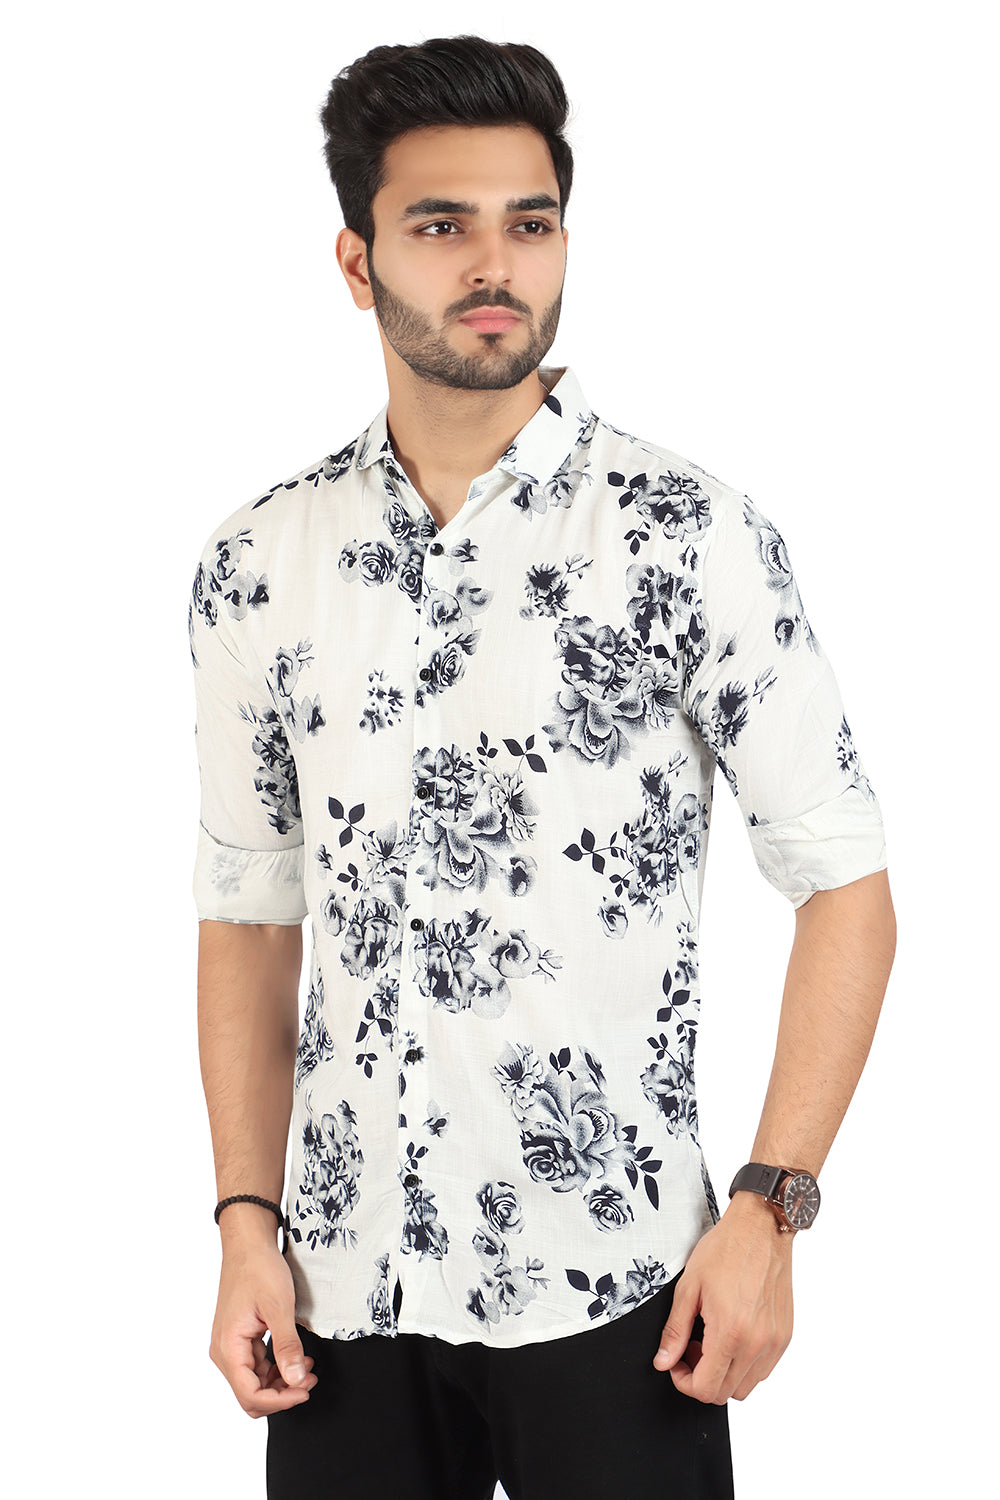 White Floral Printed Shirt (SH200)